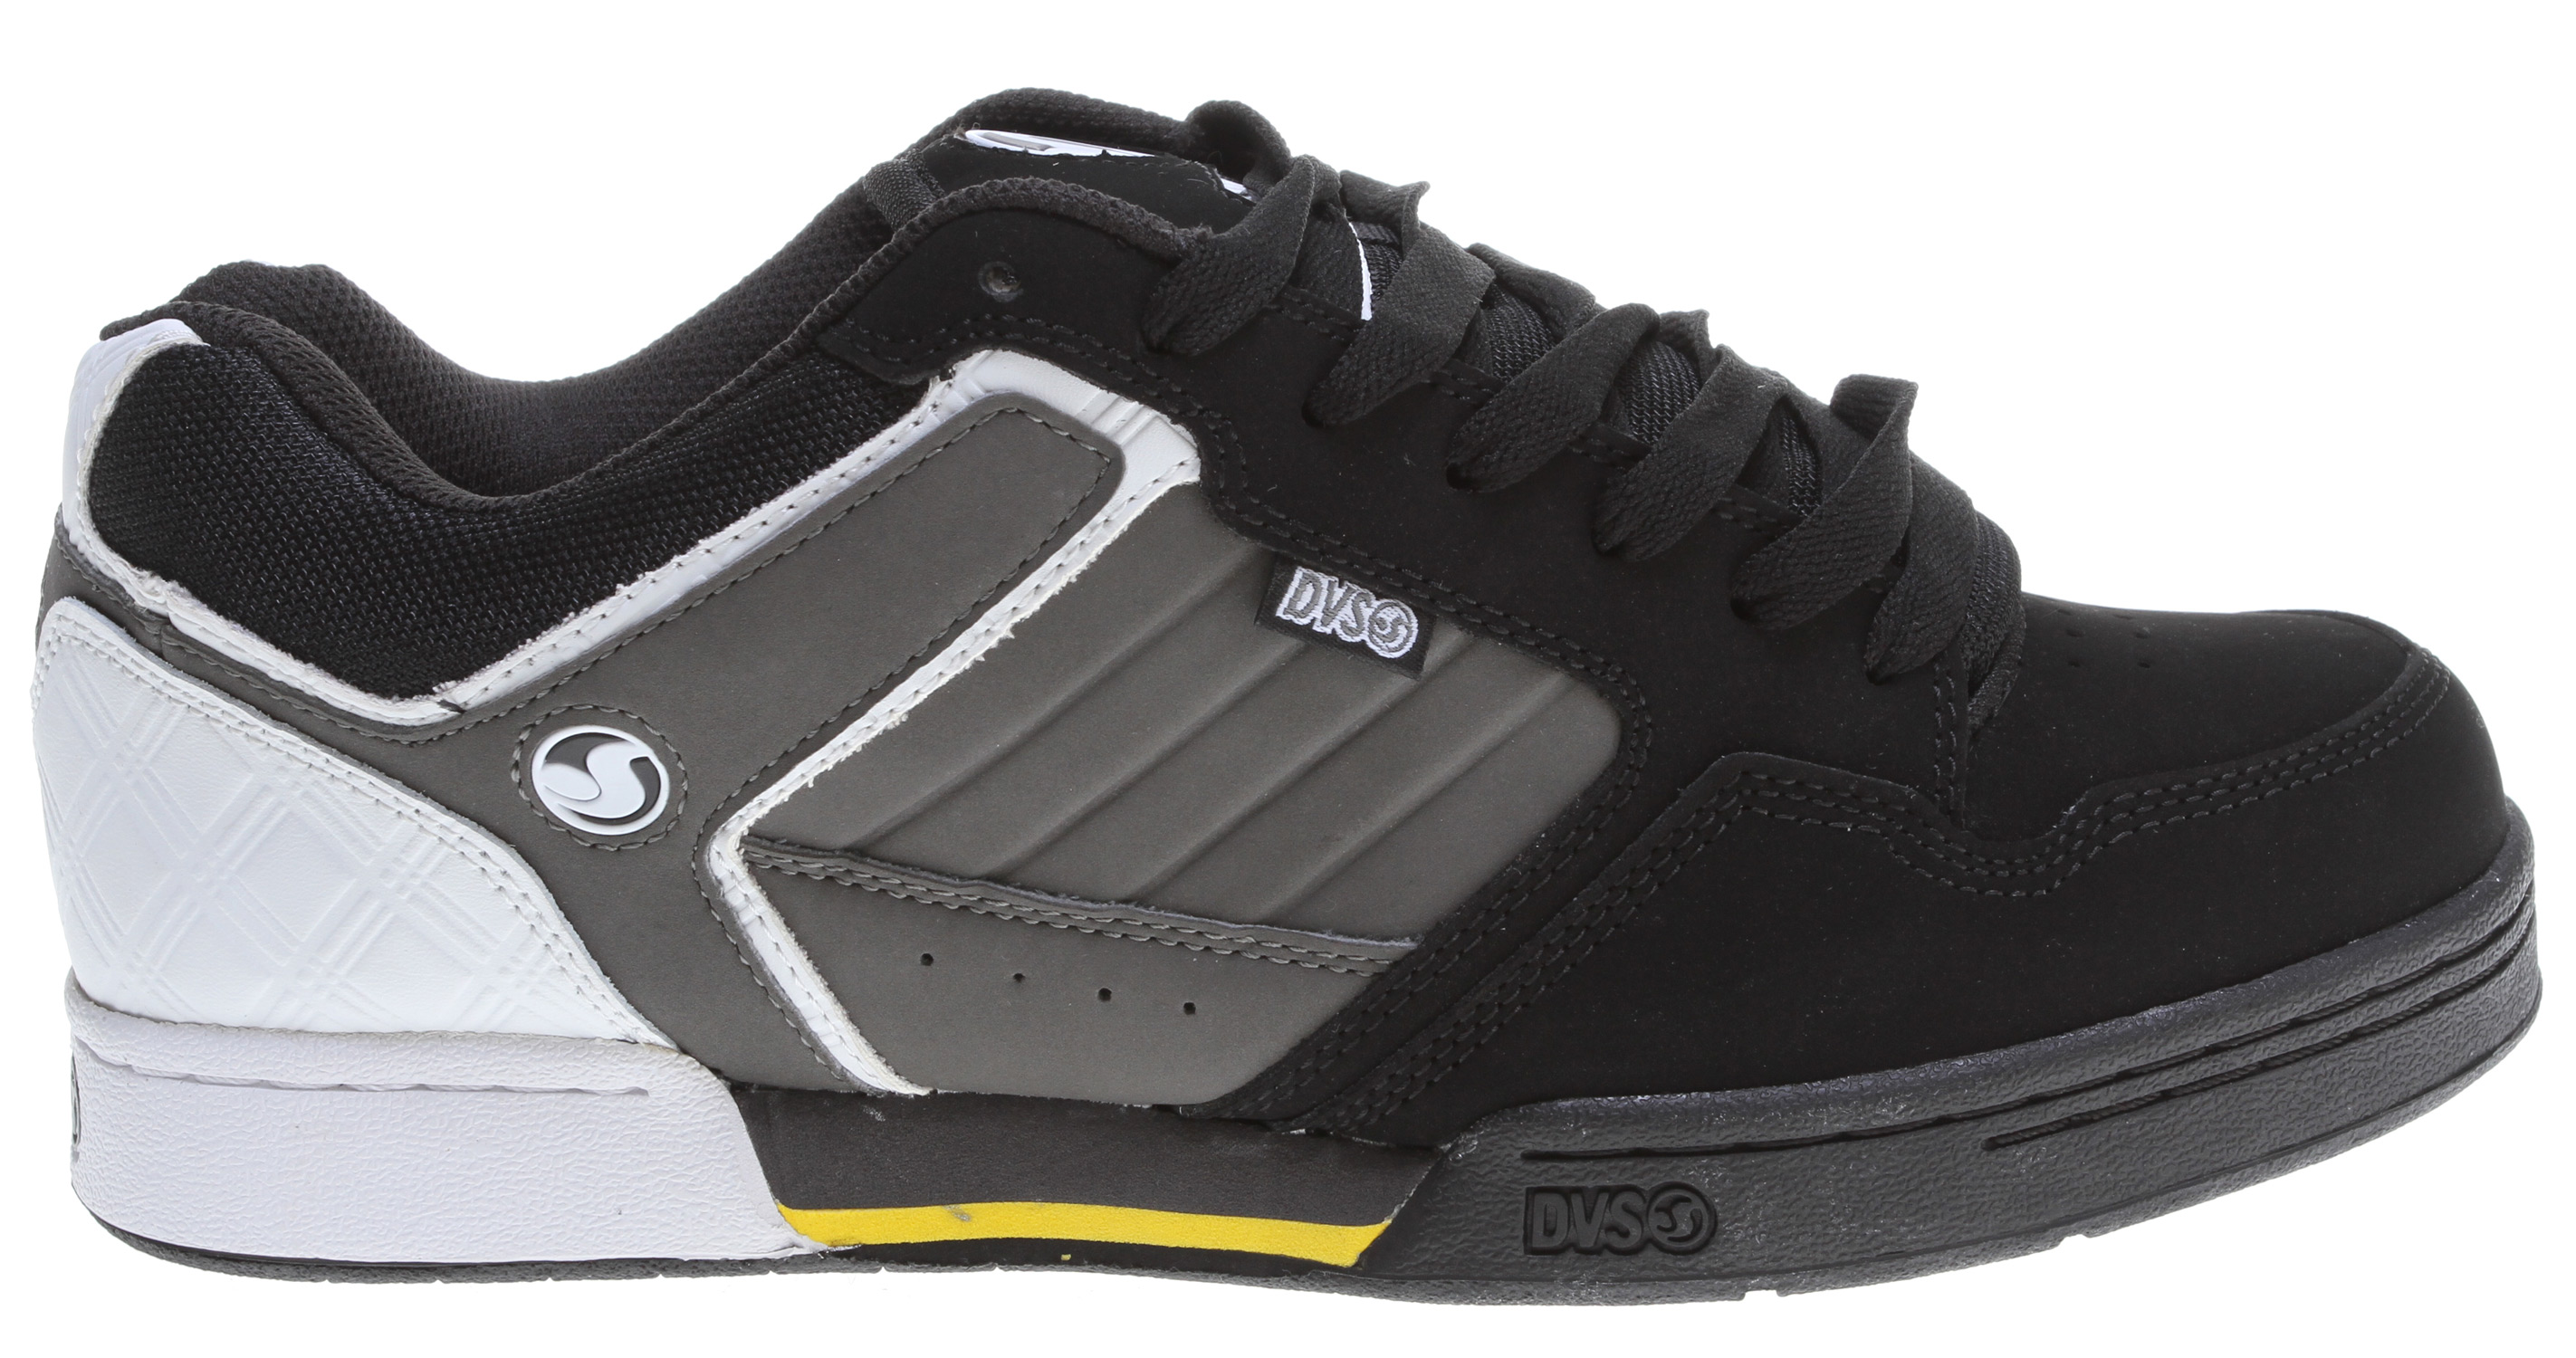 "Skateboard Key Features of the DVS Transom Skate Shoes: Leather/Nubuck Upper Material Tpr Logo Branding ""Secret Stash"" Tongue Pocket High Density Collar & Tongue Padding For Support High Impact Insole & Midsole Unit Lightweight Eva/Rubber Cupsole - $49.95"